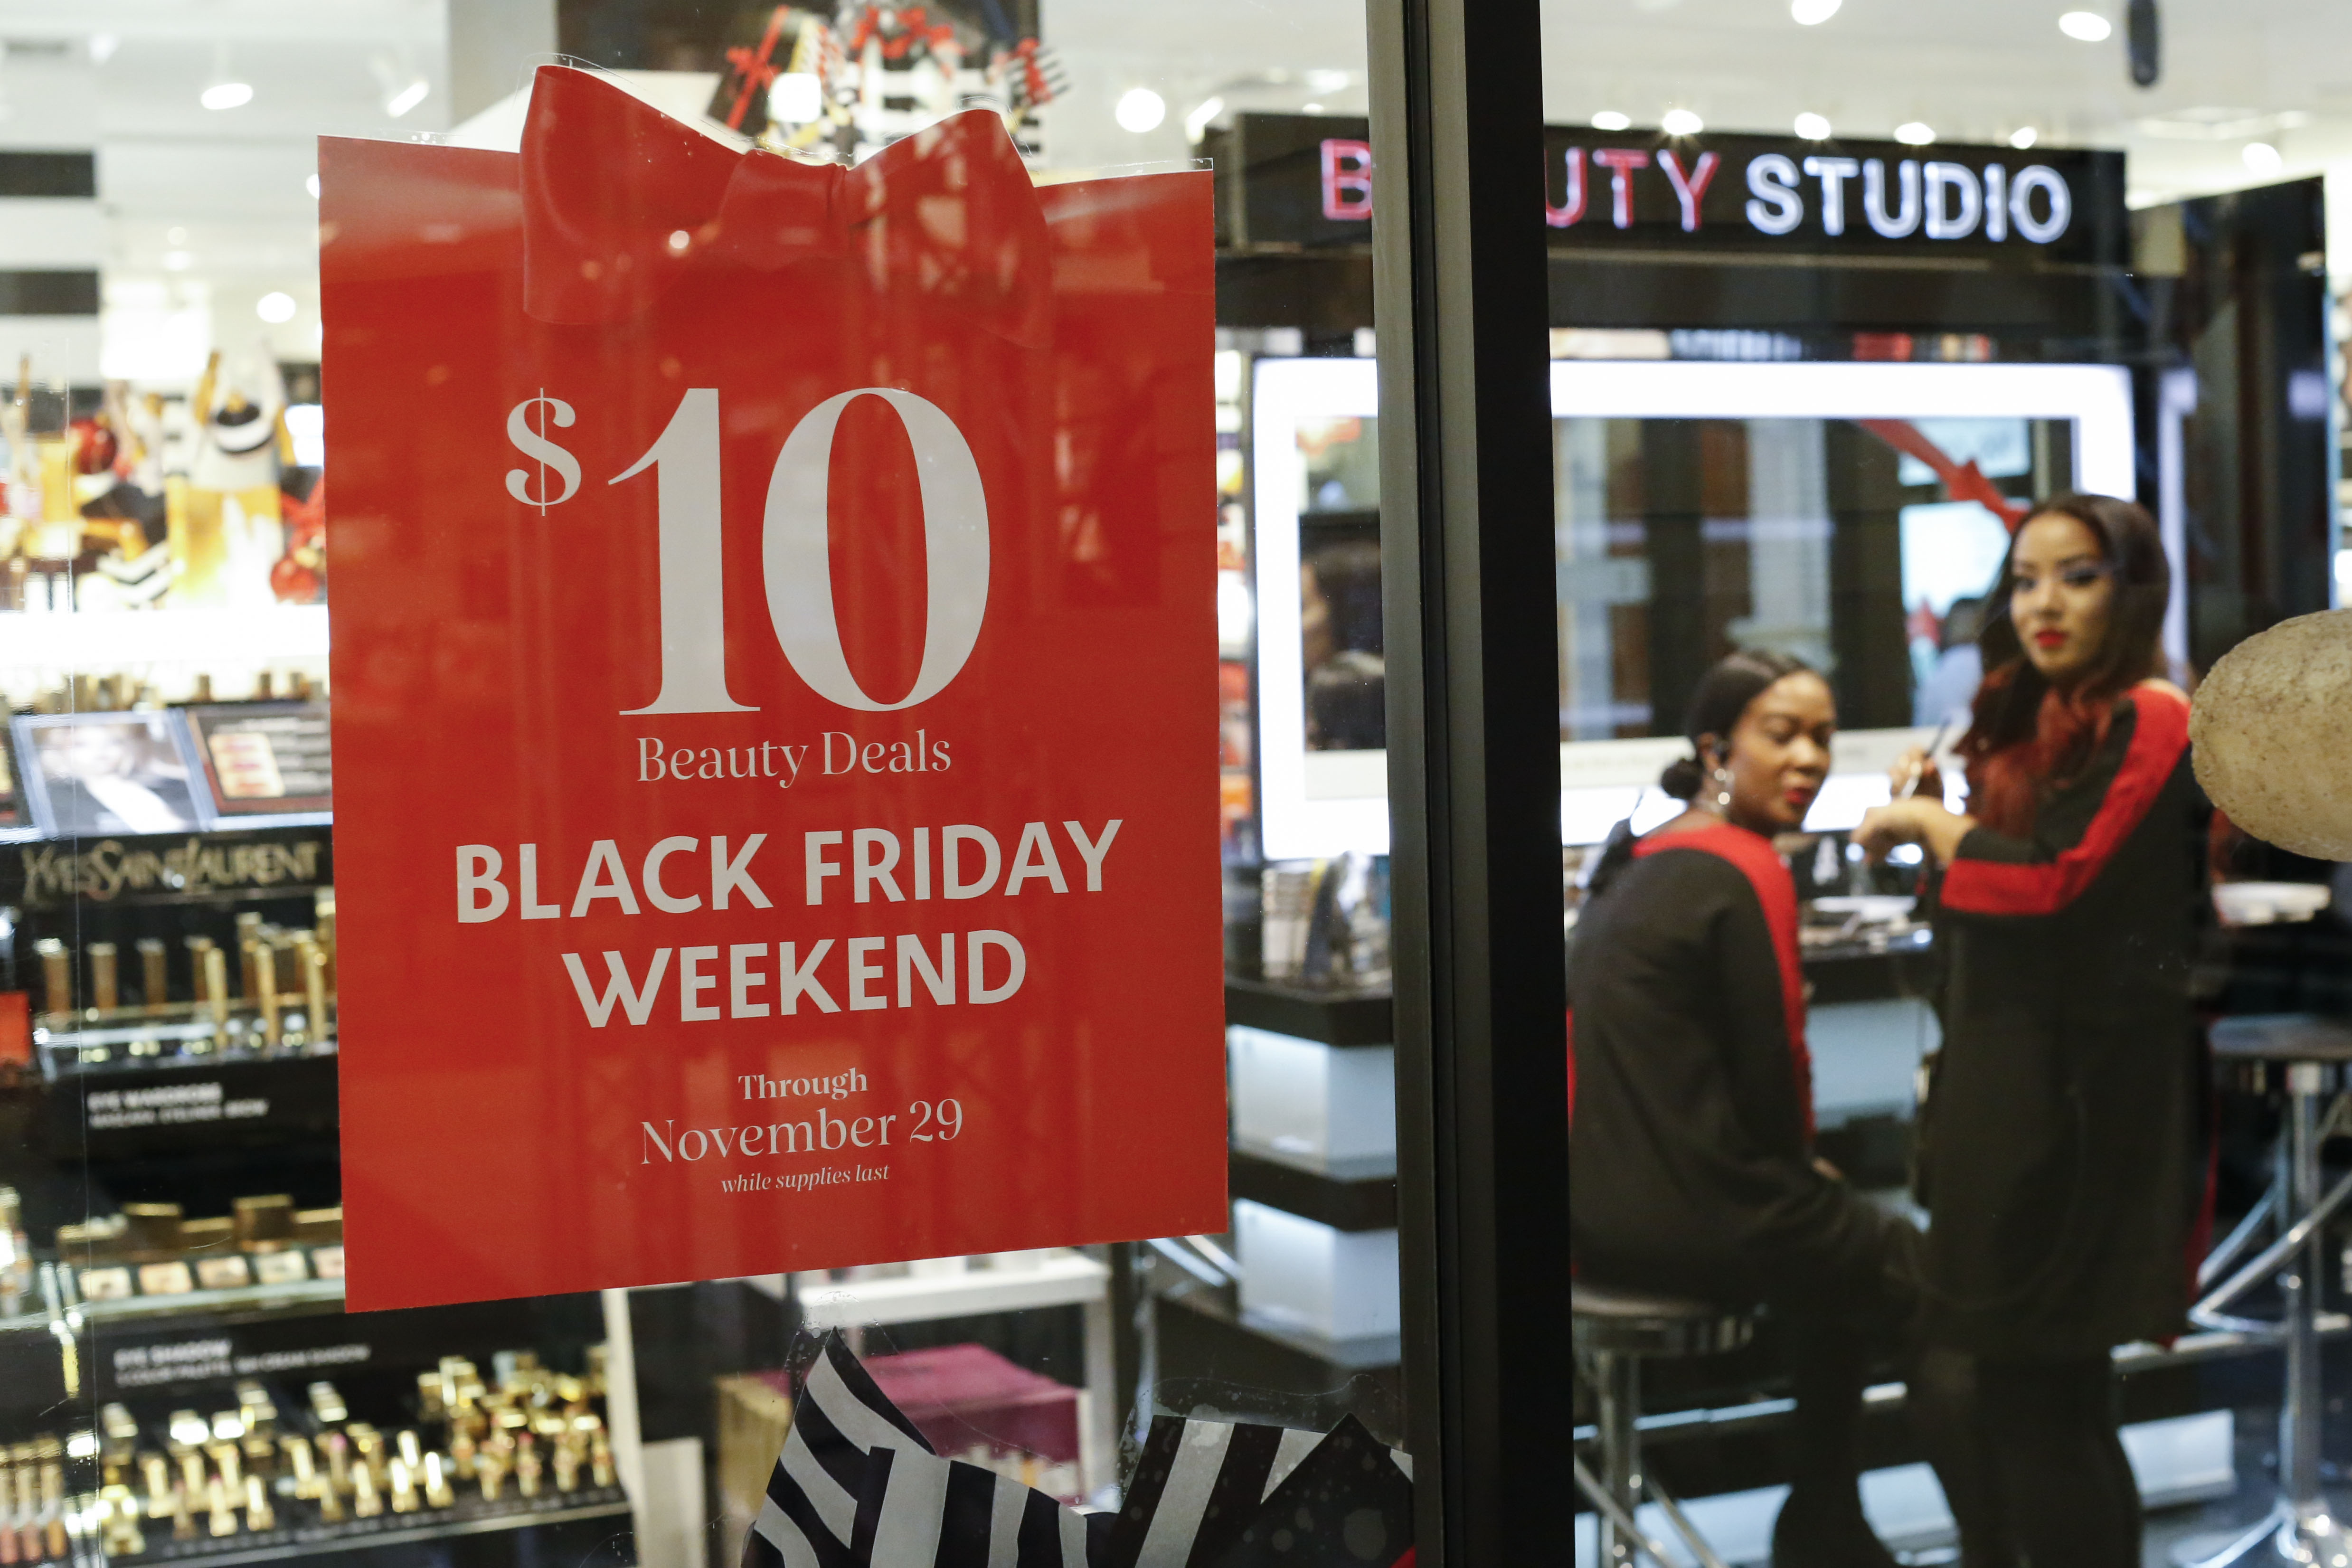 A Black Friday sale sign in a Sephora store.